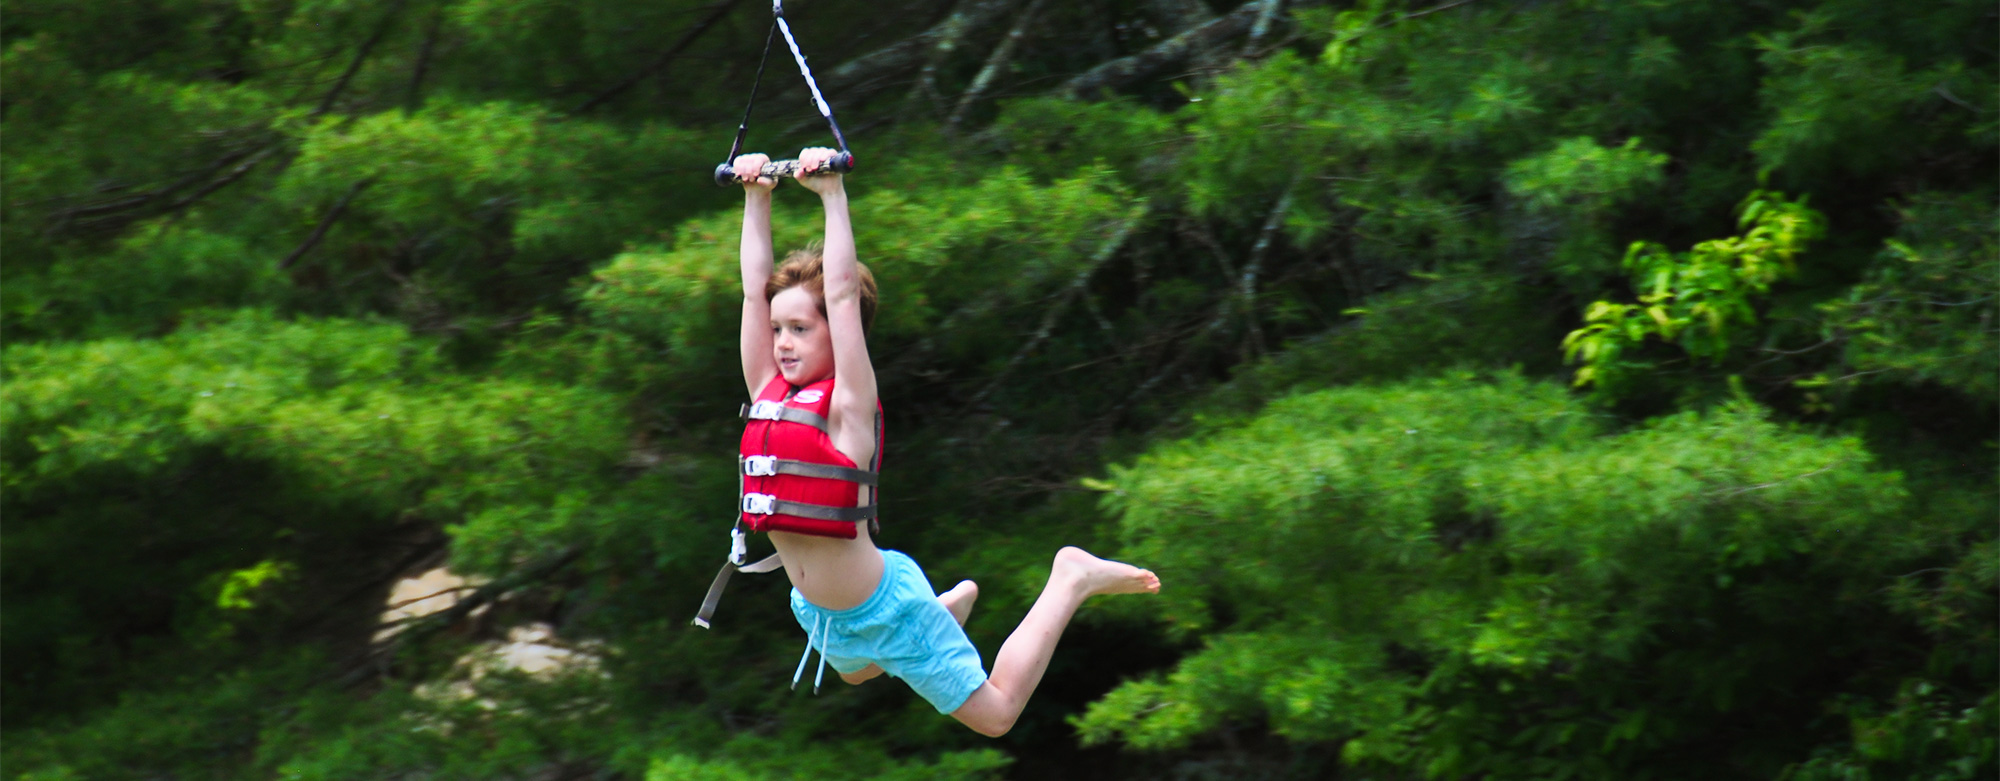 Build A Challenger >> Falling Creek offers 28 activities. Boys choose their schedules.